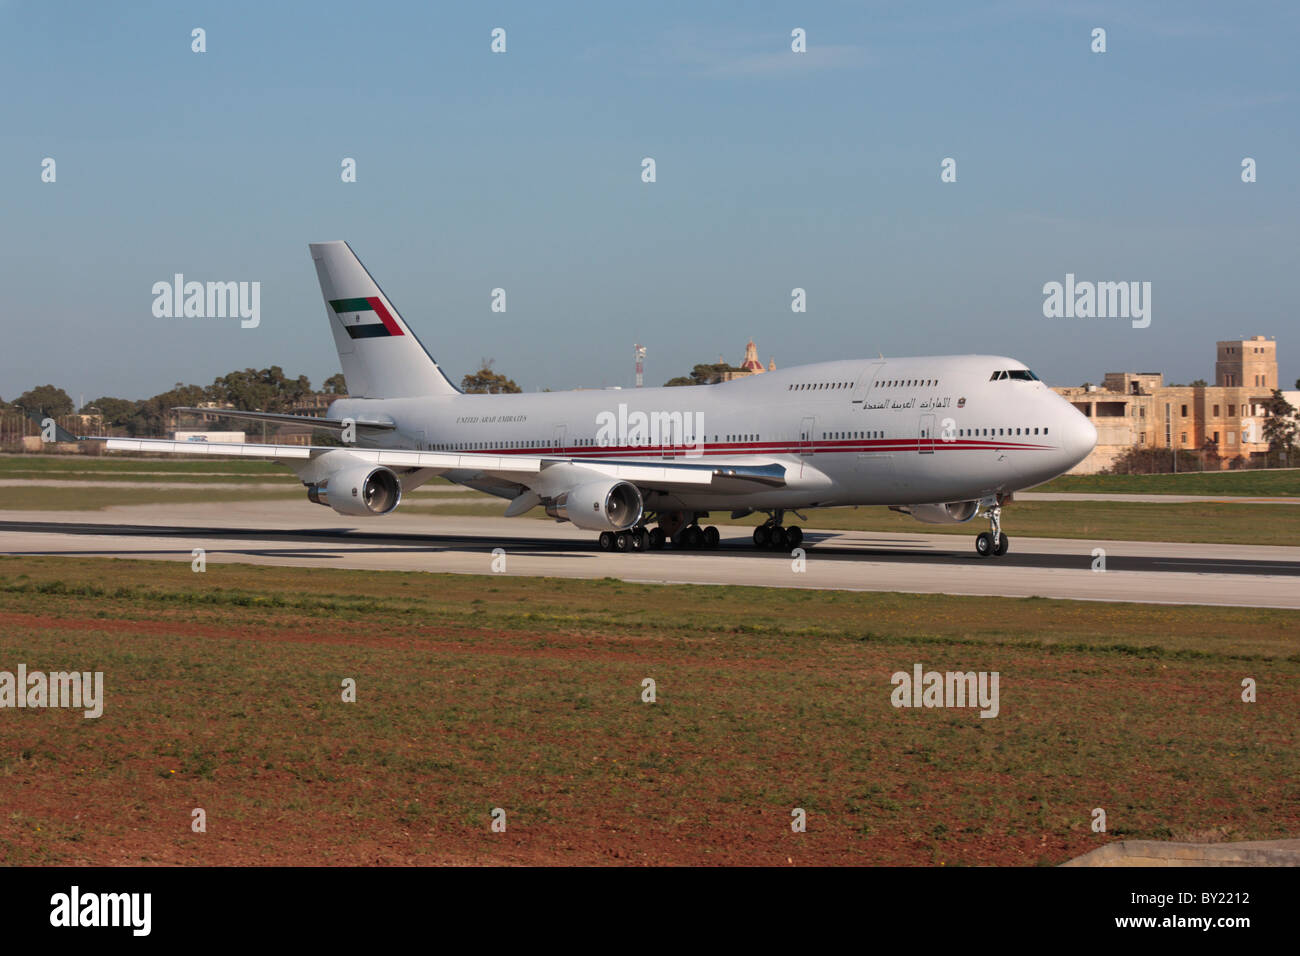 Dubai Air Wing Boeing 747-400 VIP transport on takeoff - Stock Image